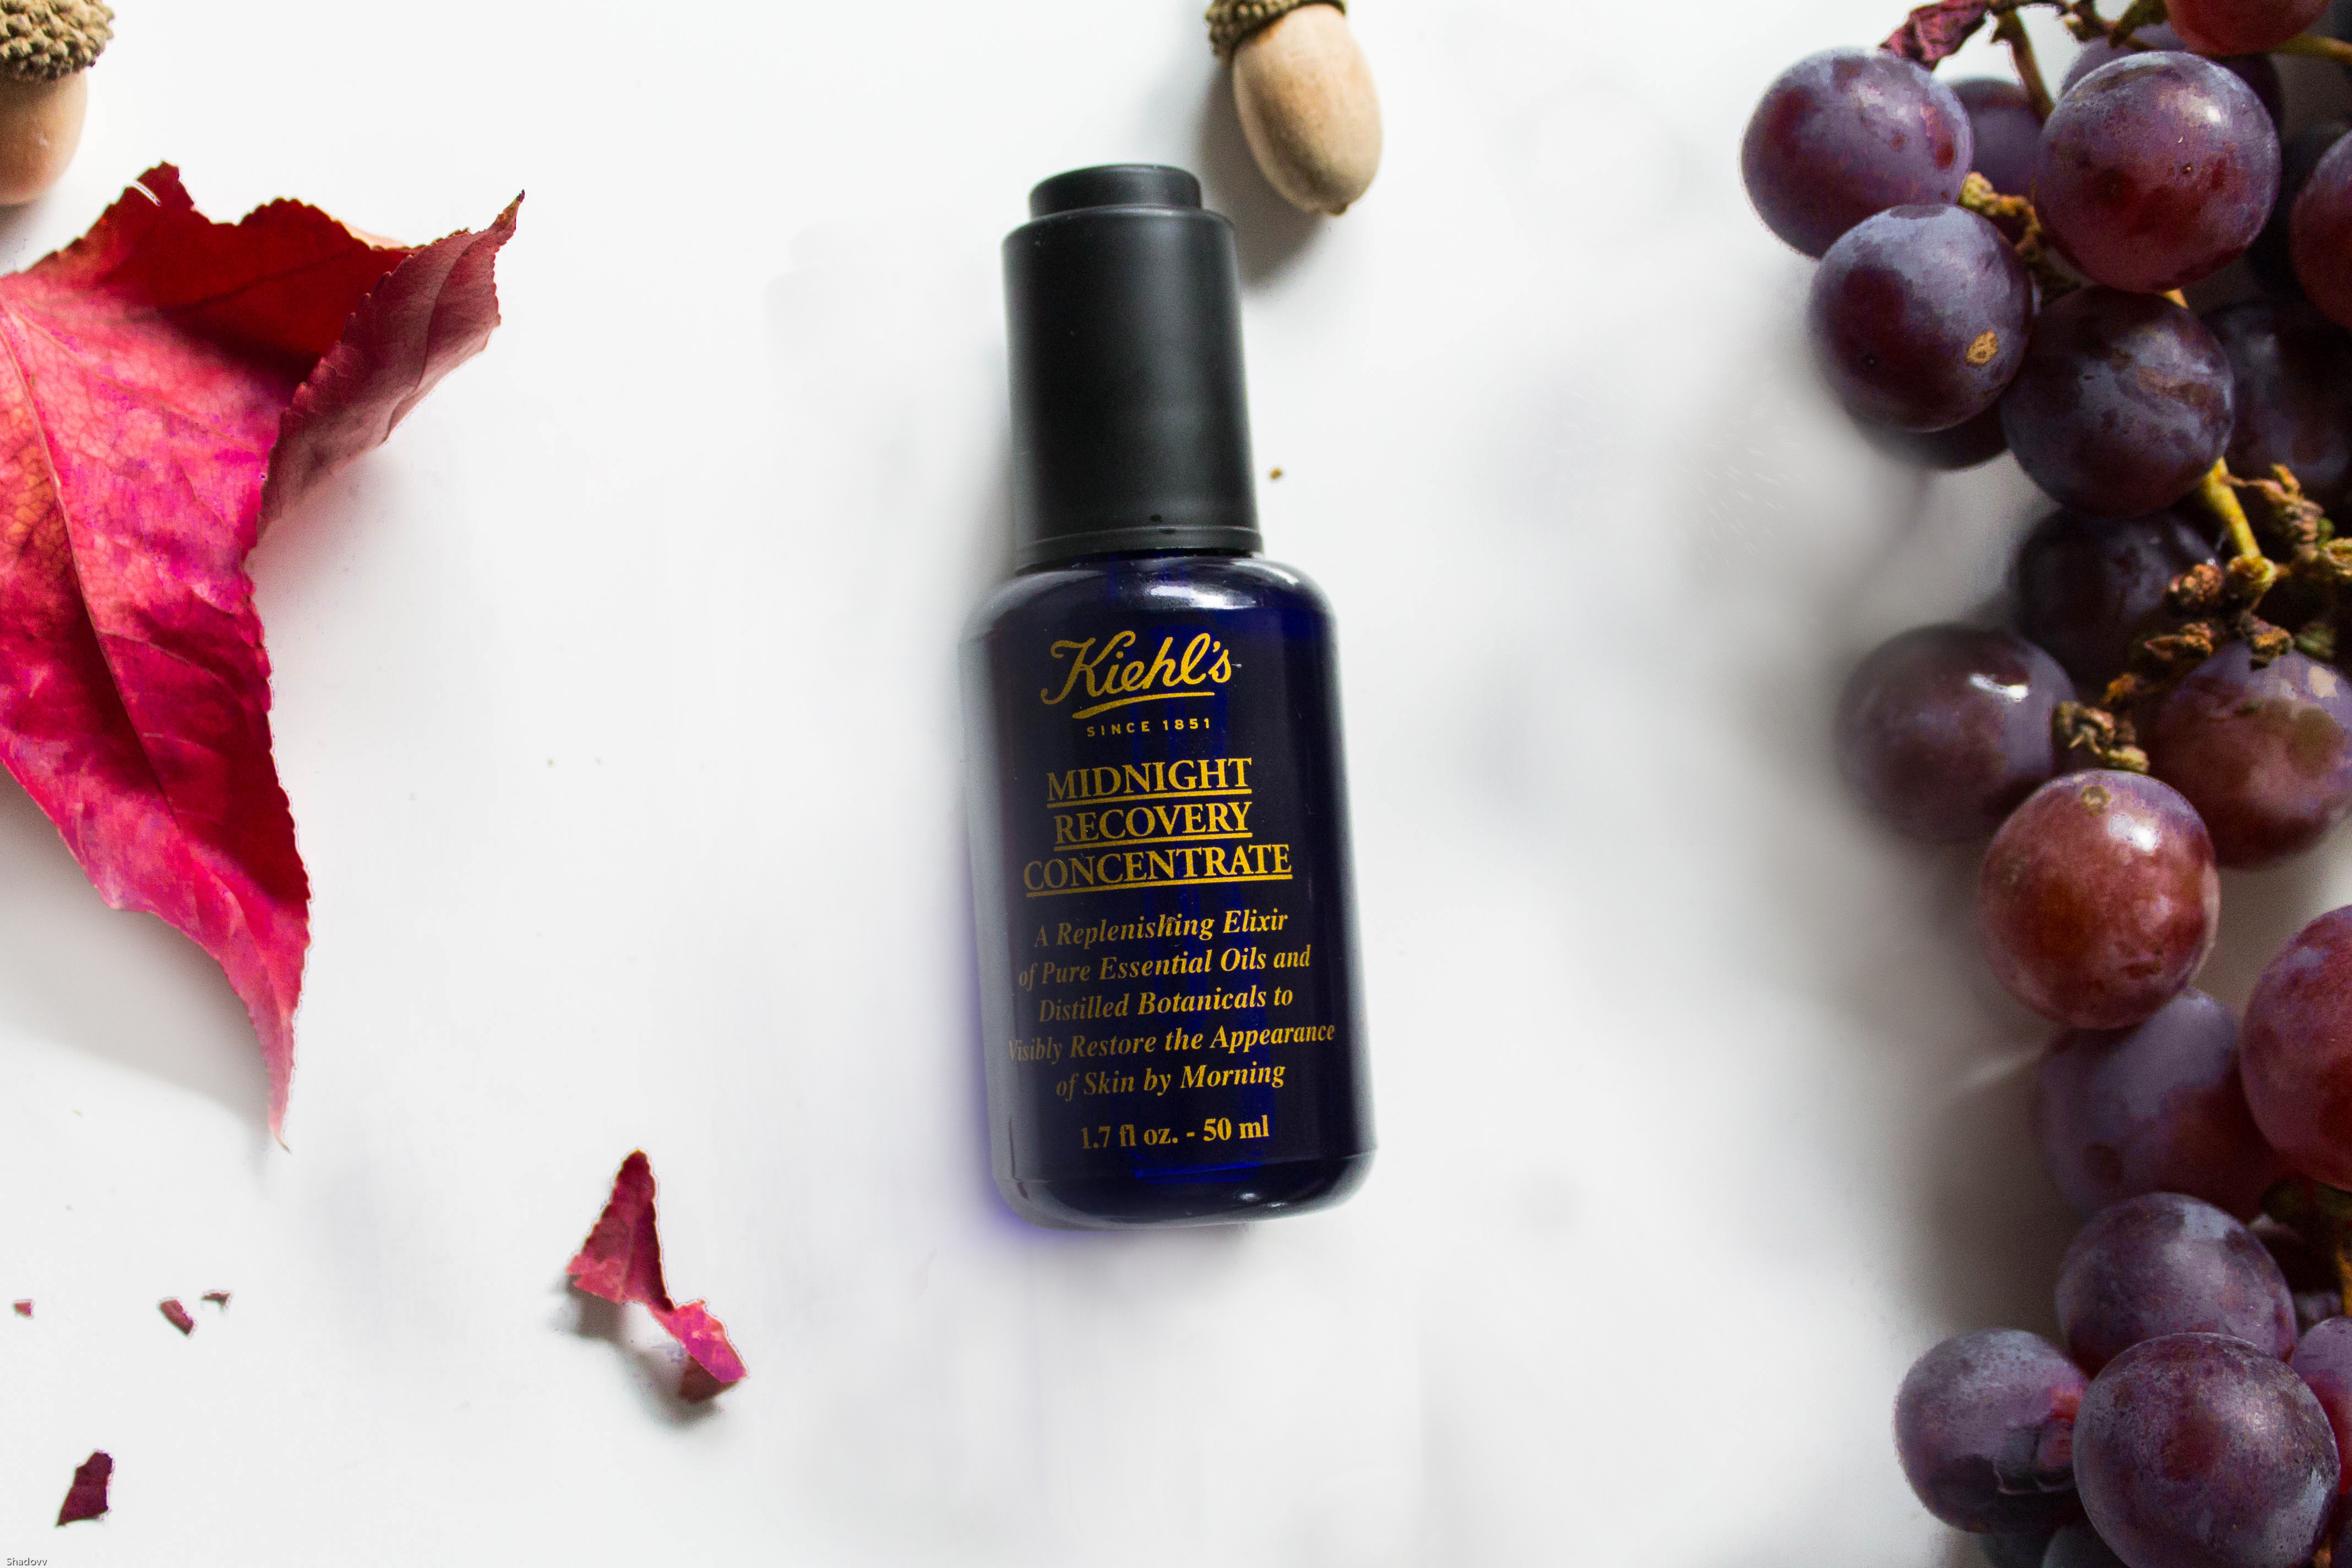 kiehls midnight recovery concentrate kardiaserena